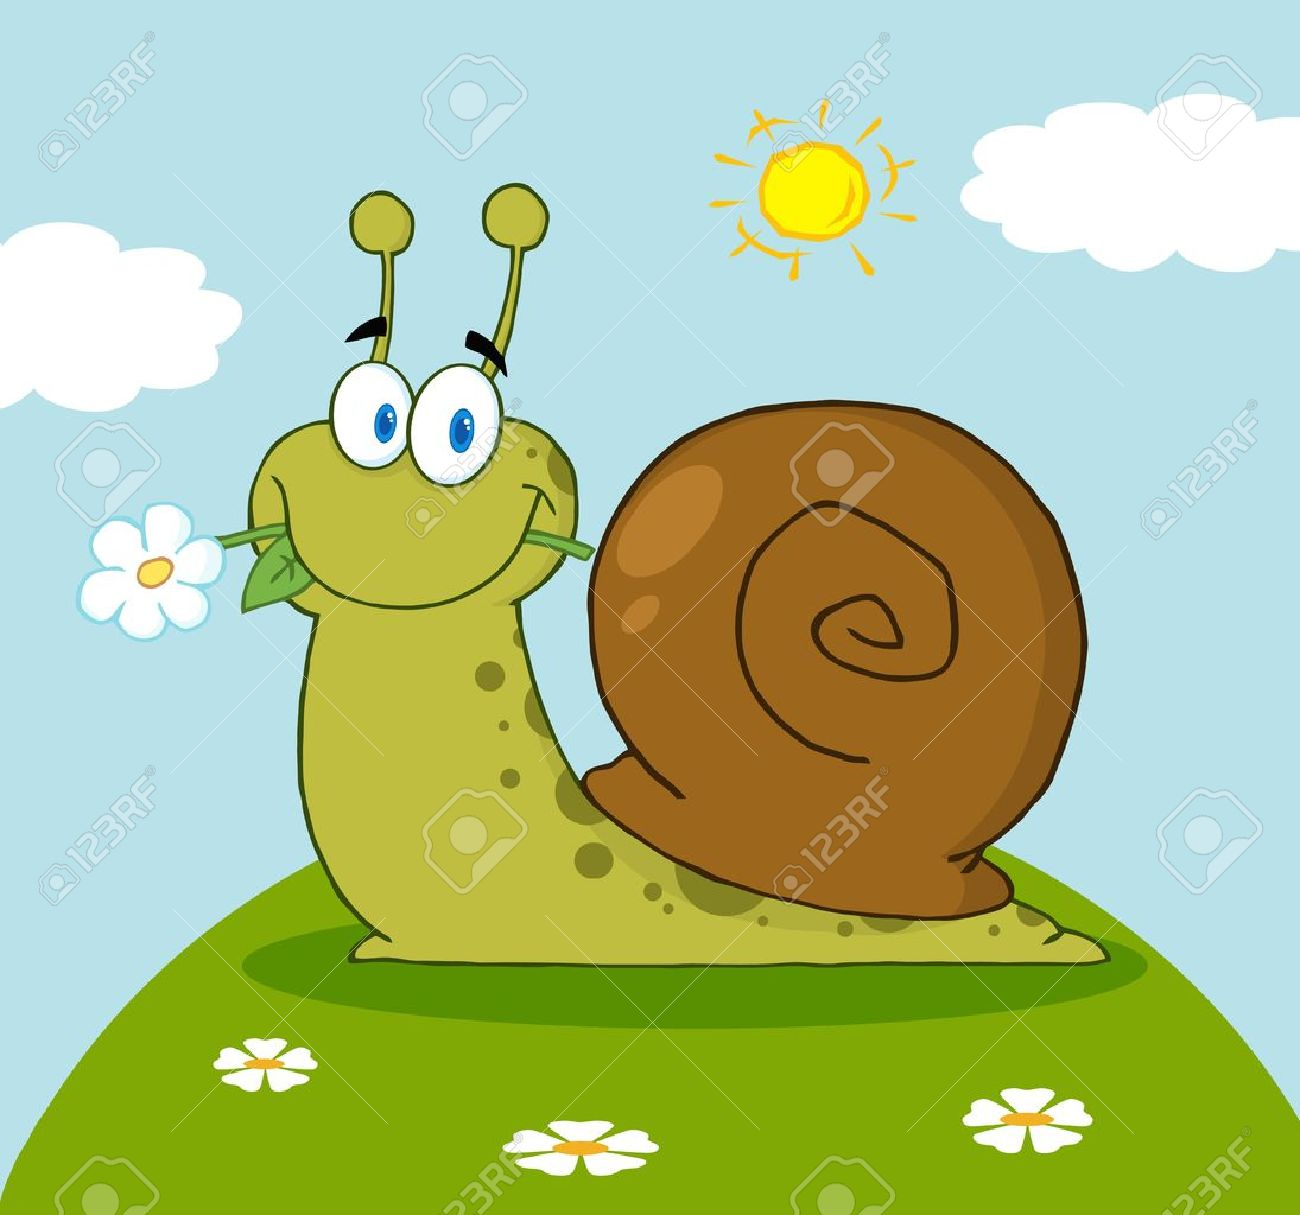 15 765 snail stock illustrations cliparts and royalty free snail